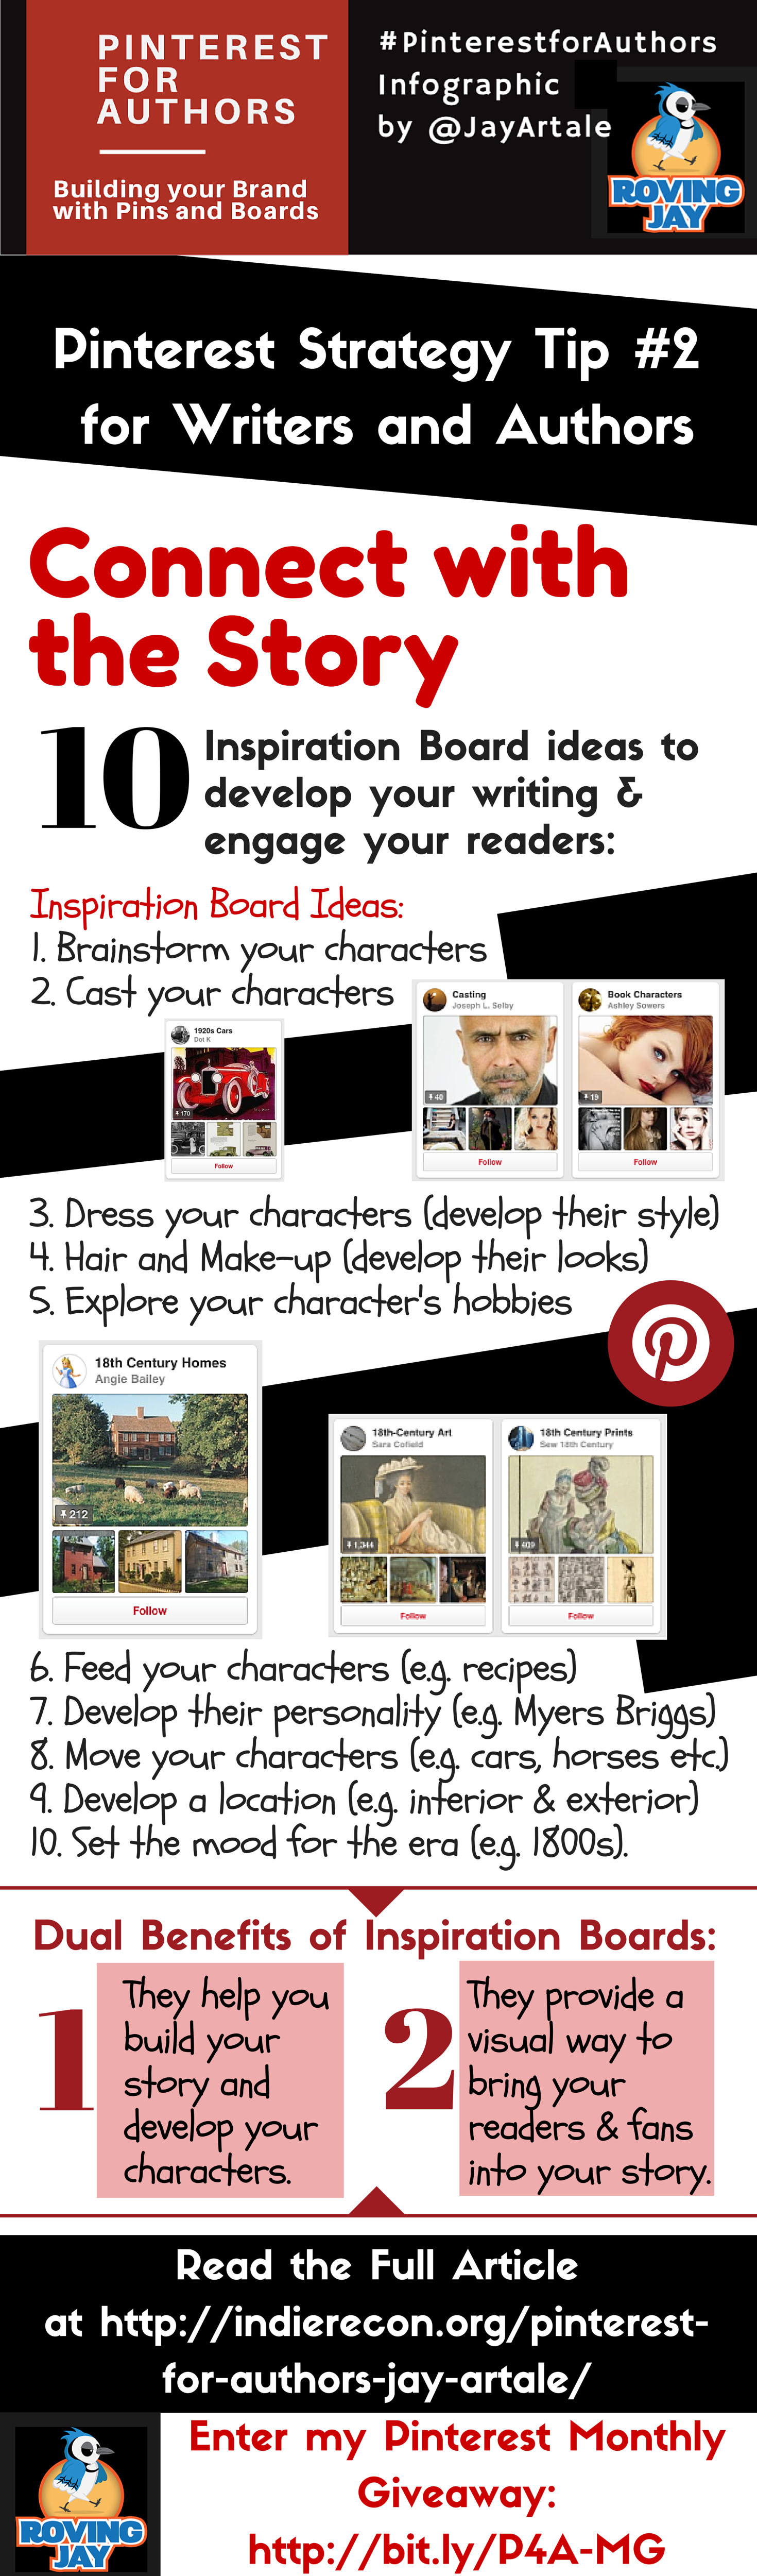 Here's a summary of Pinterest-13